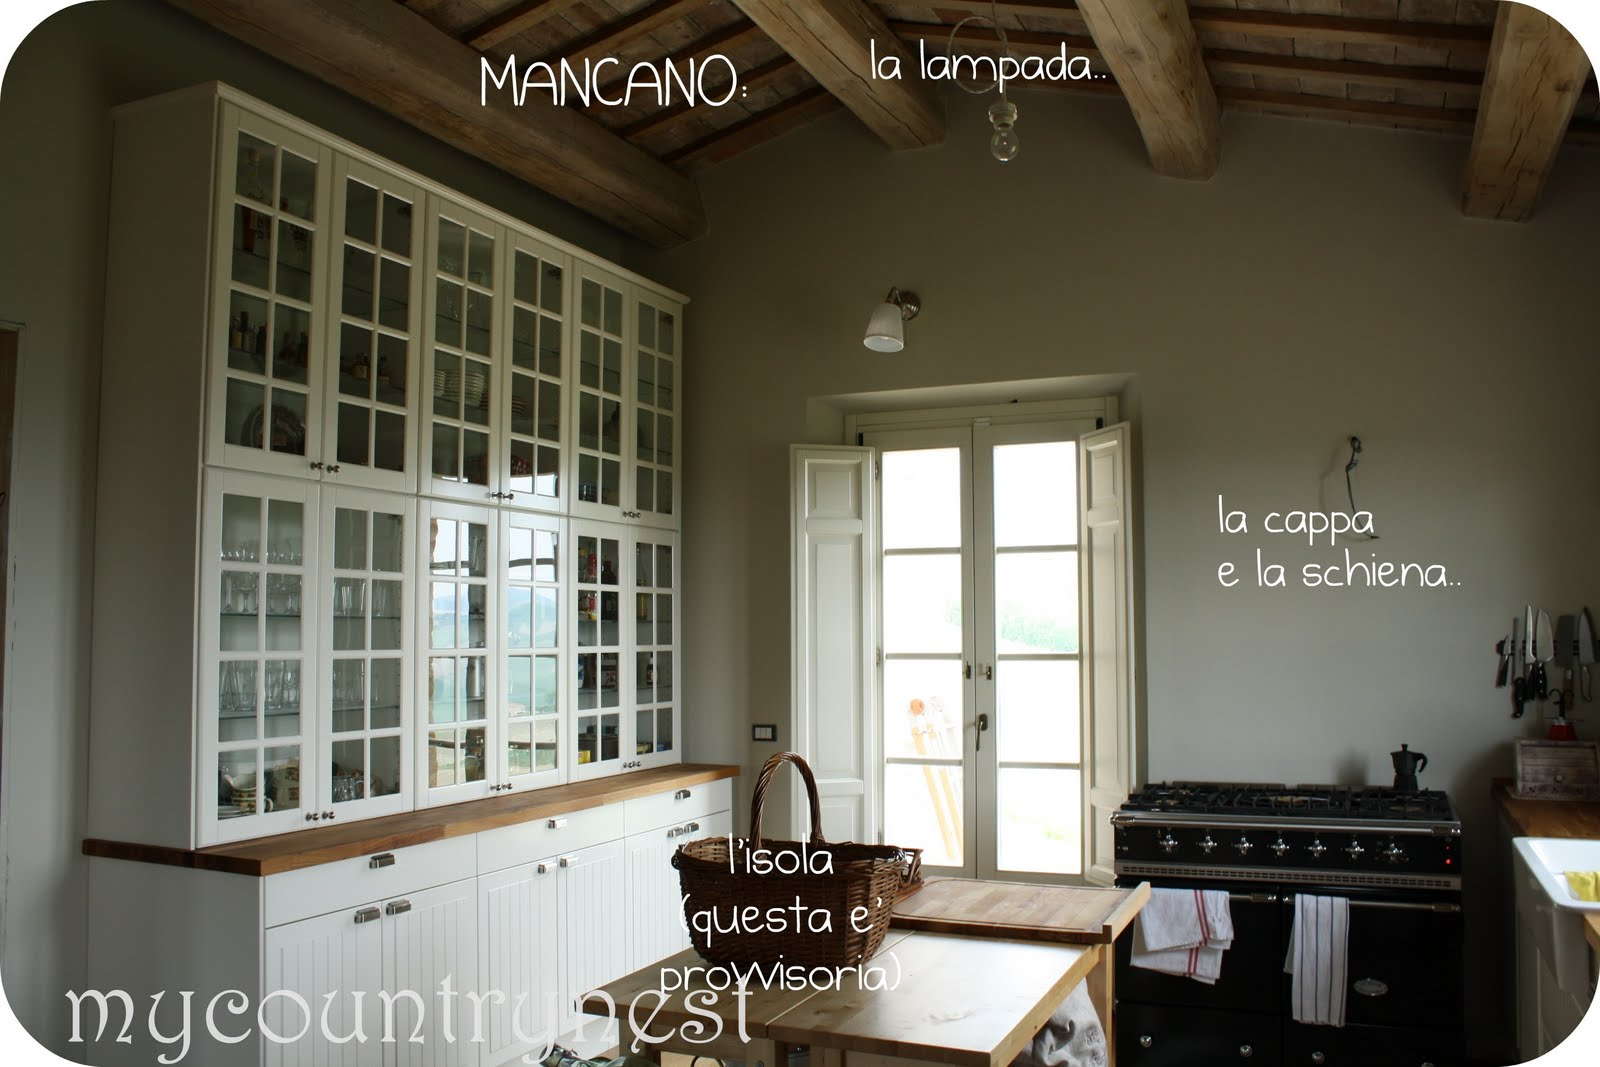 My country nest: La nostra cucina